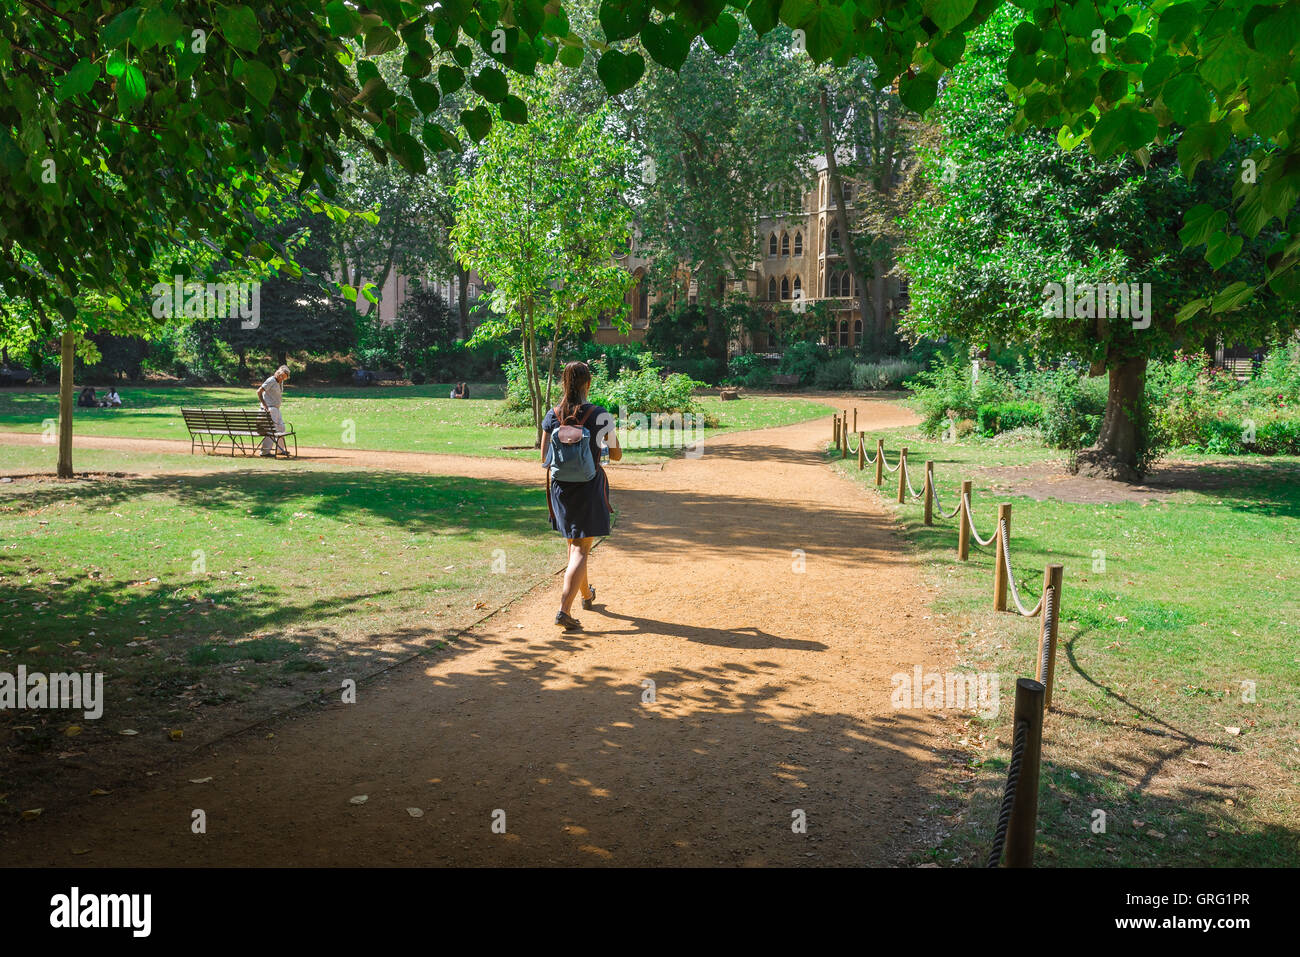 London park, rear view of a young woman wearing a backpack walking through Gordon Square in Bloomsbury on a summer - Stock Image